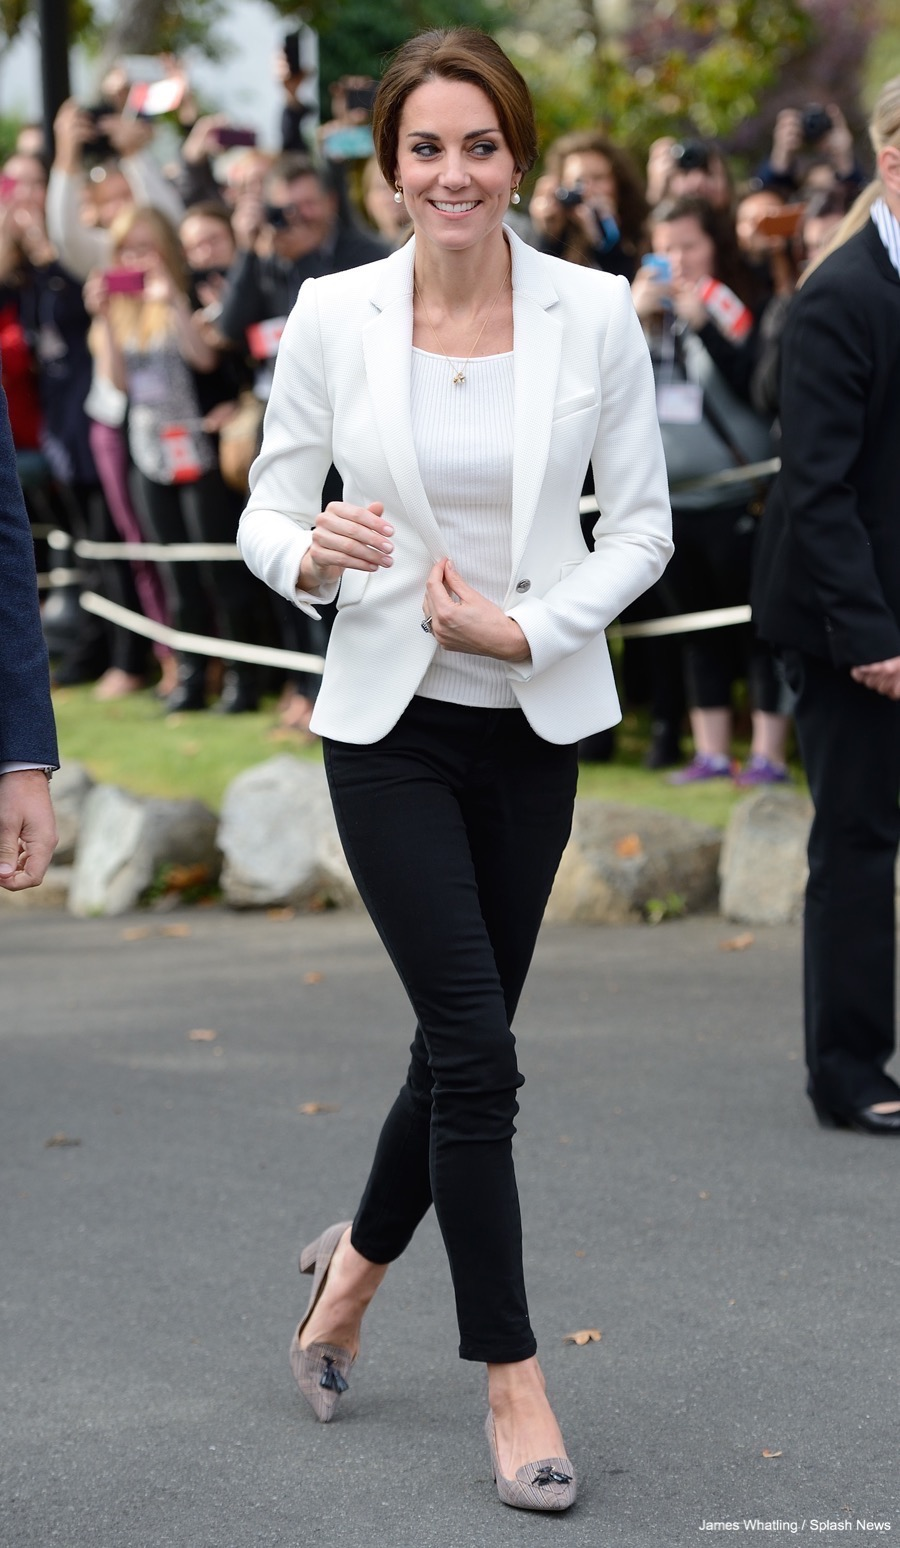 Kate Middleton wearing the white waffle blazer by Zara while on tour in Canada